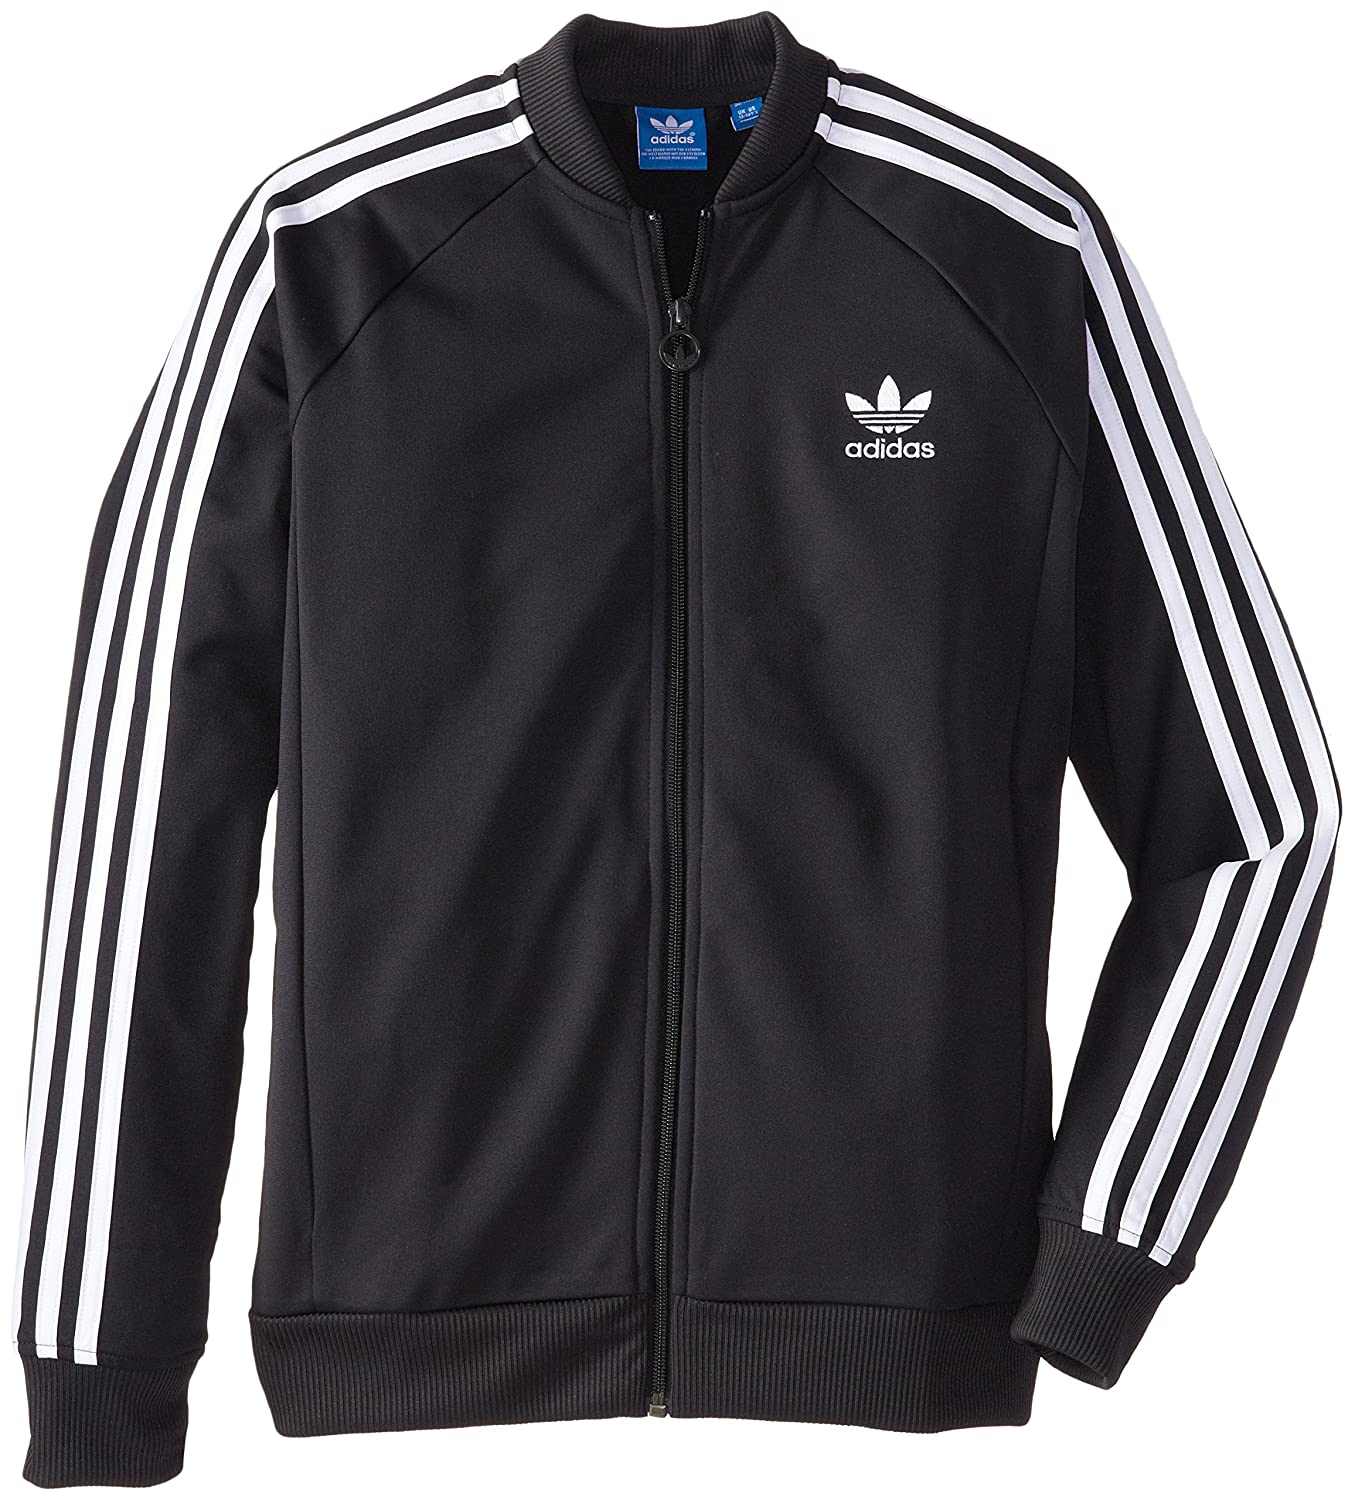 9c8810c5d0c Amazon.com: adidas Originals Boys' Superstar Track Top: Clothing